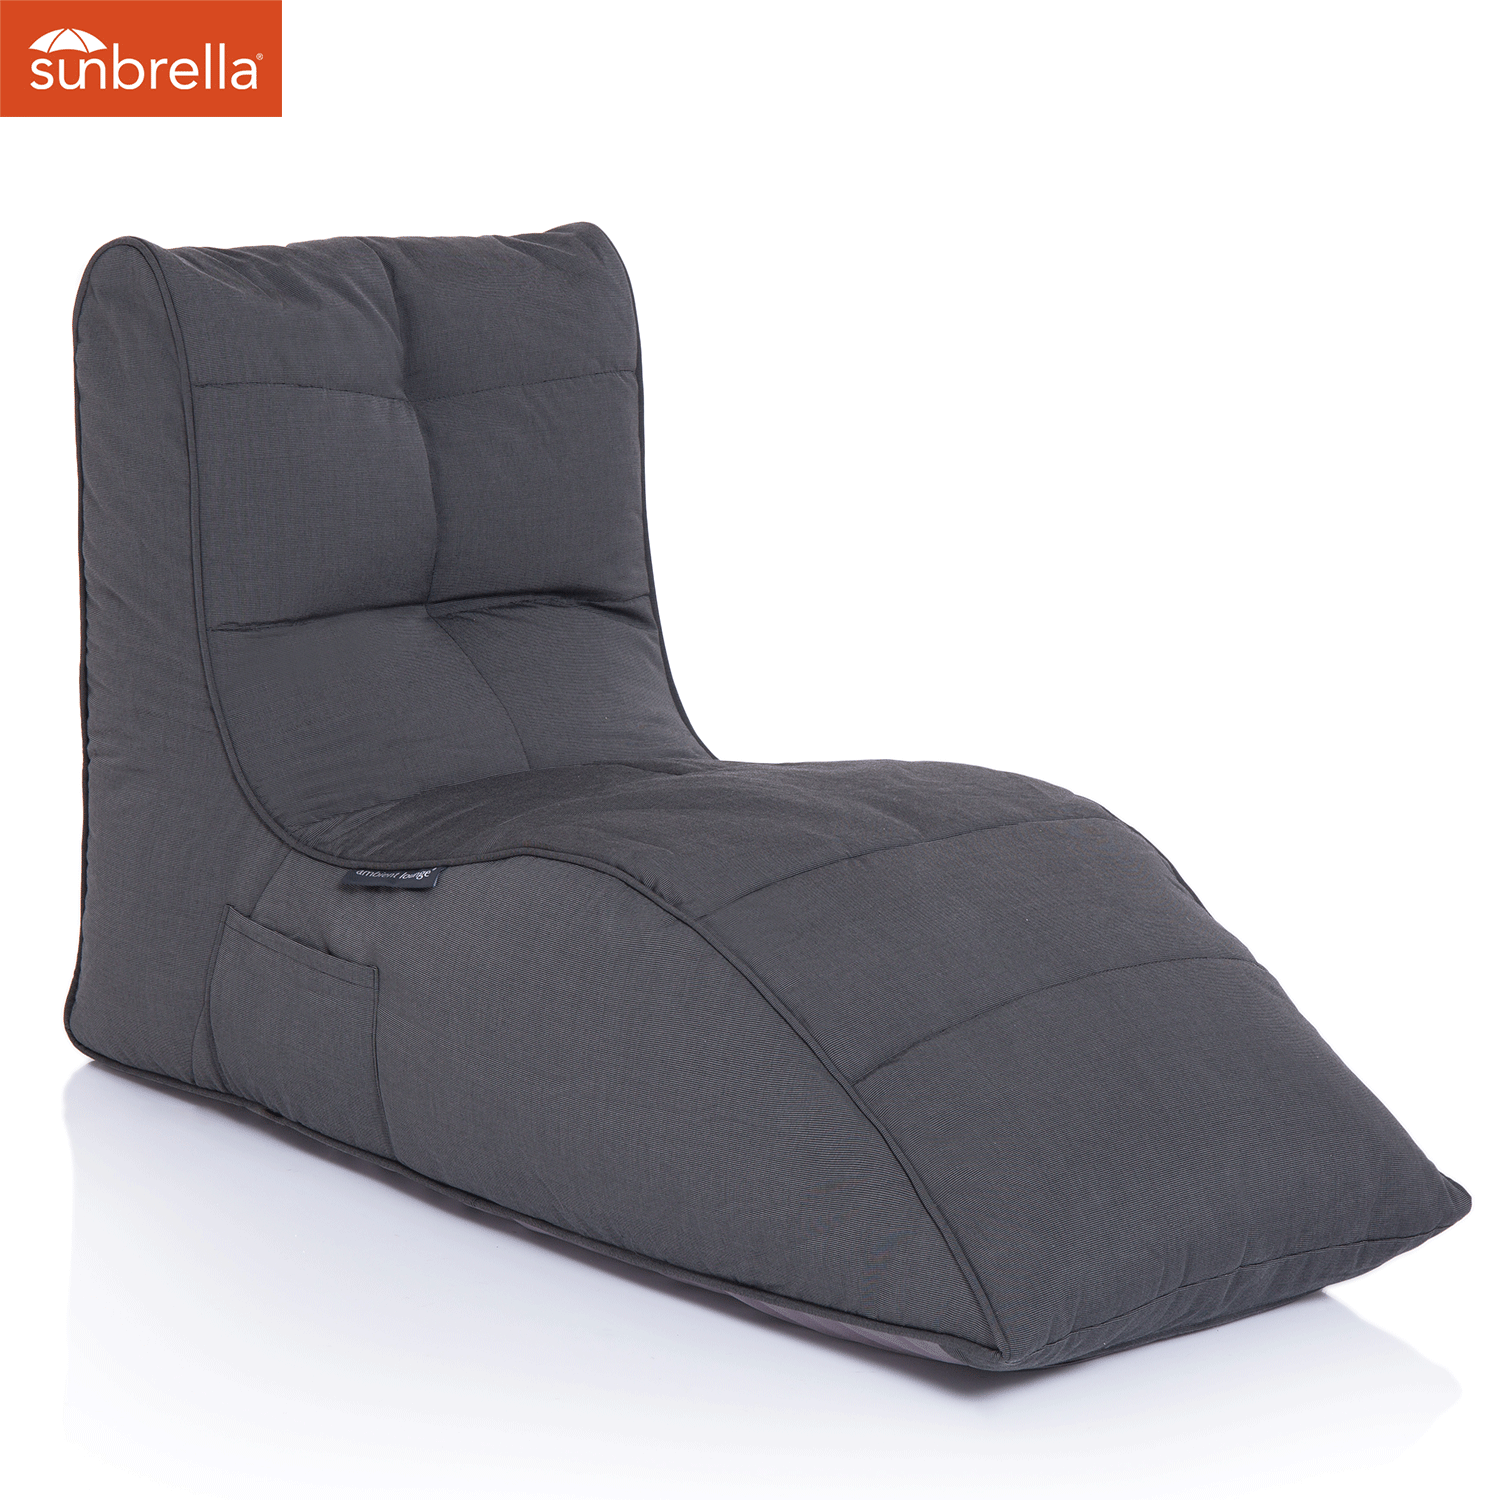 Outdoor Bean Bags Avatar Lounger Black Rock Sunbrella